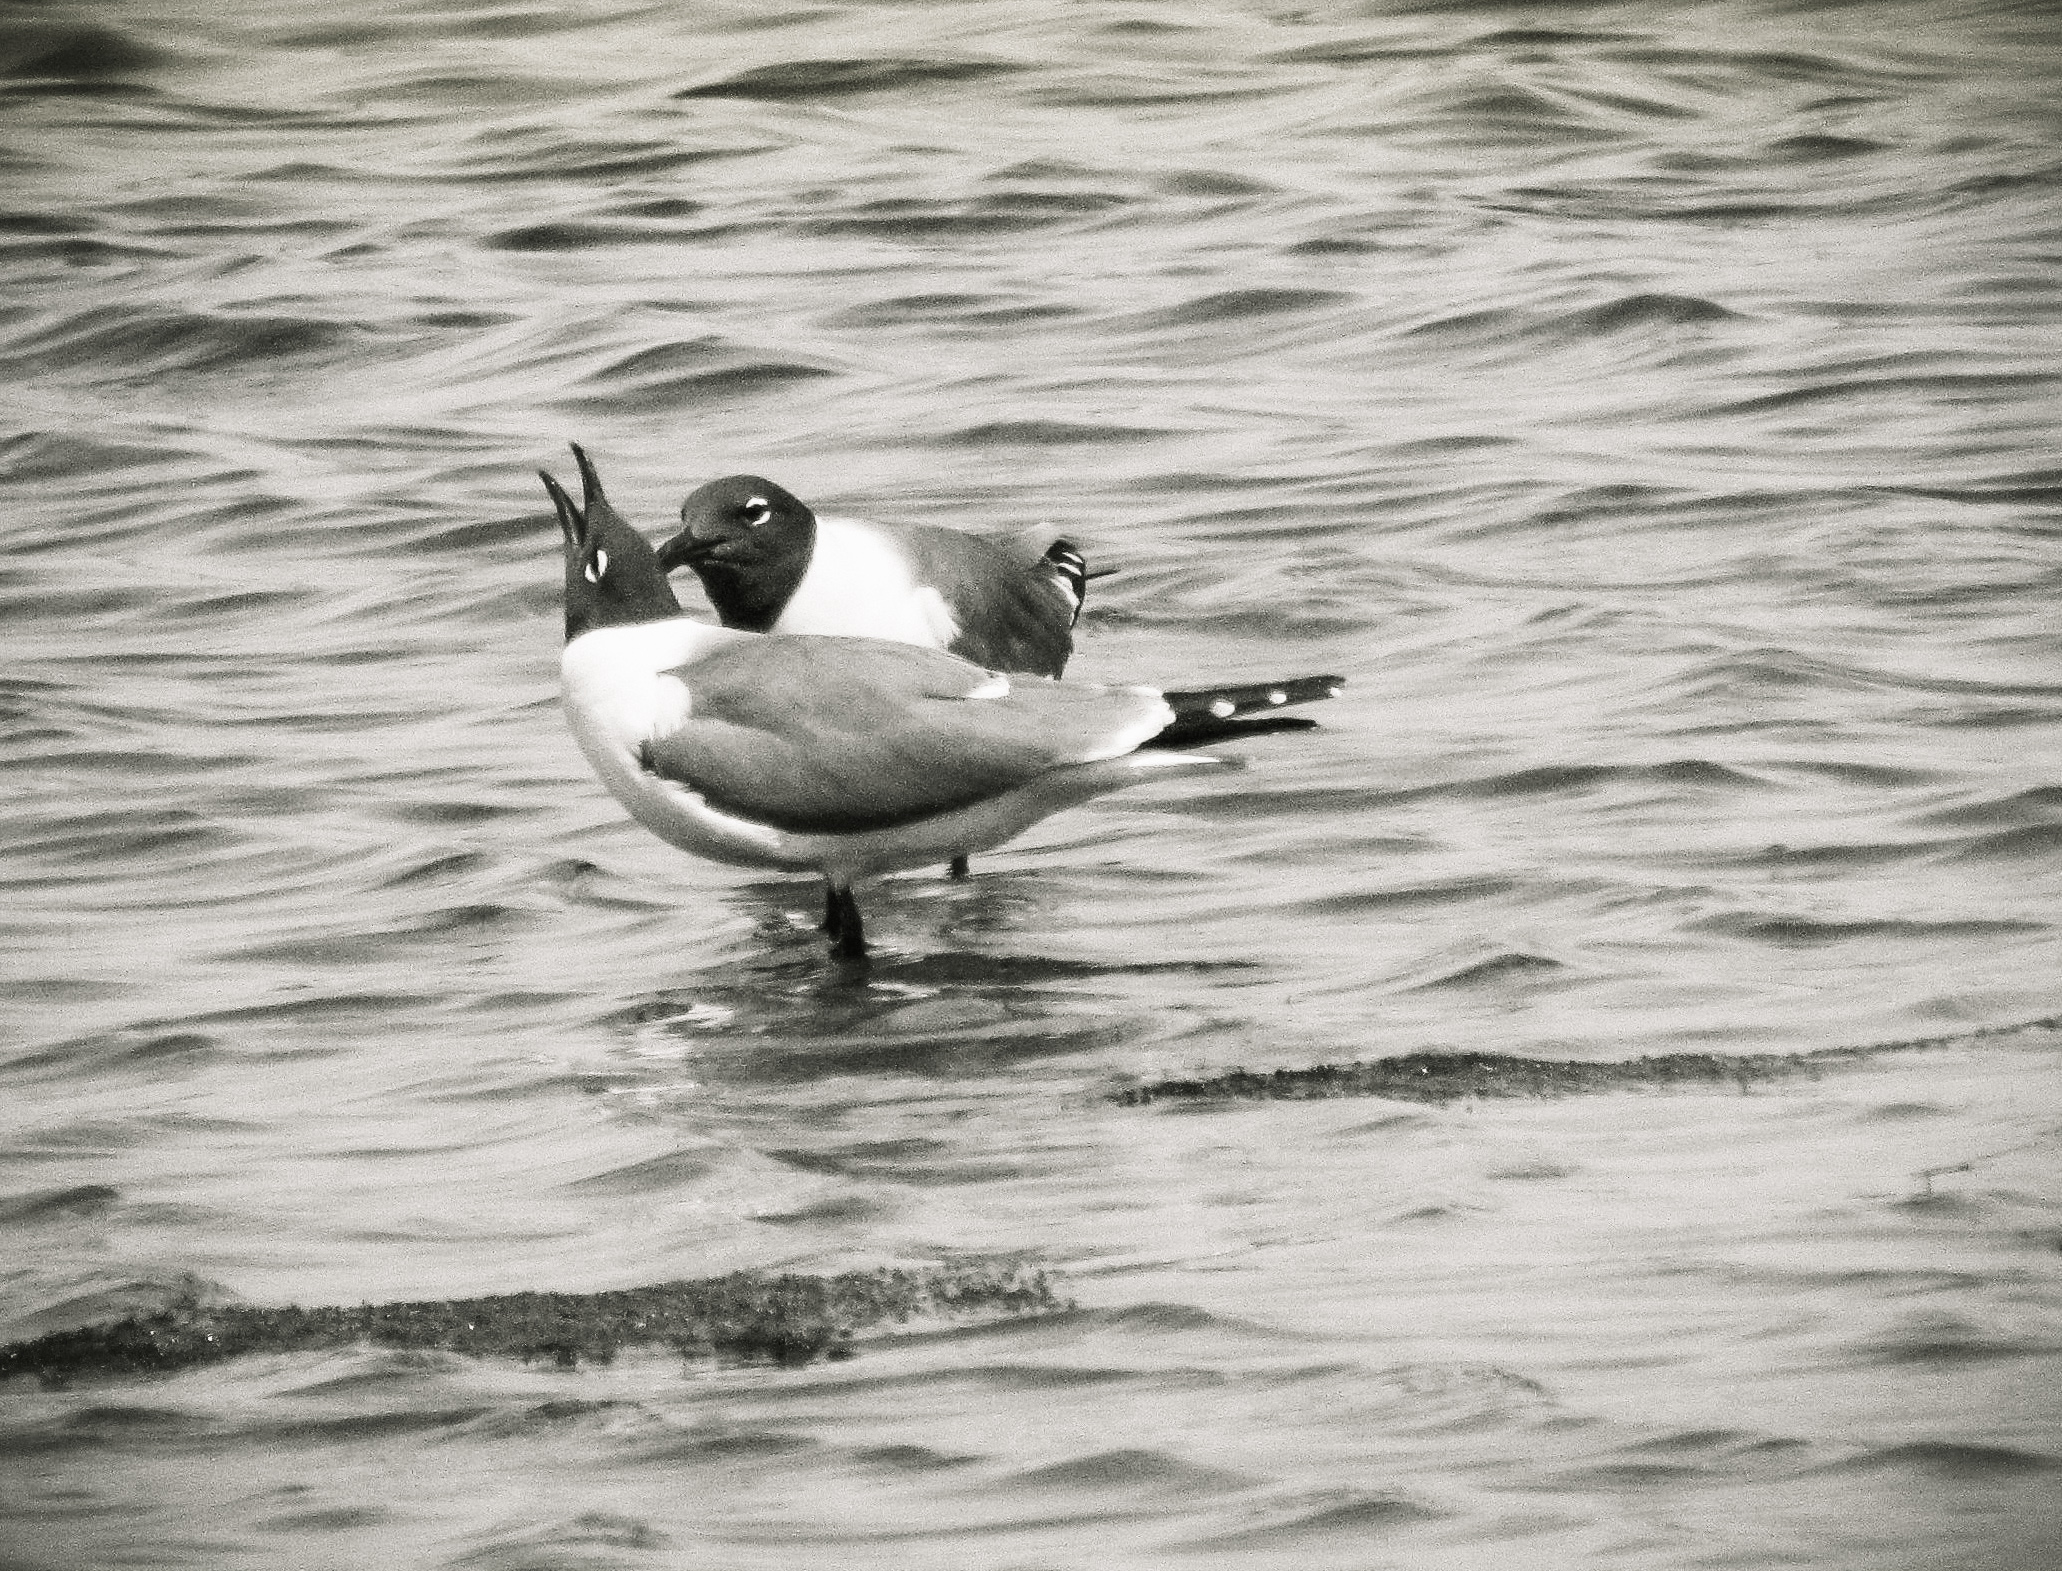 Bonded Laughing Gull Pair Photo: Rose Anderson